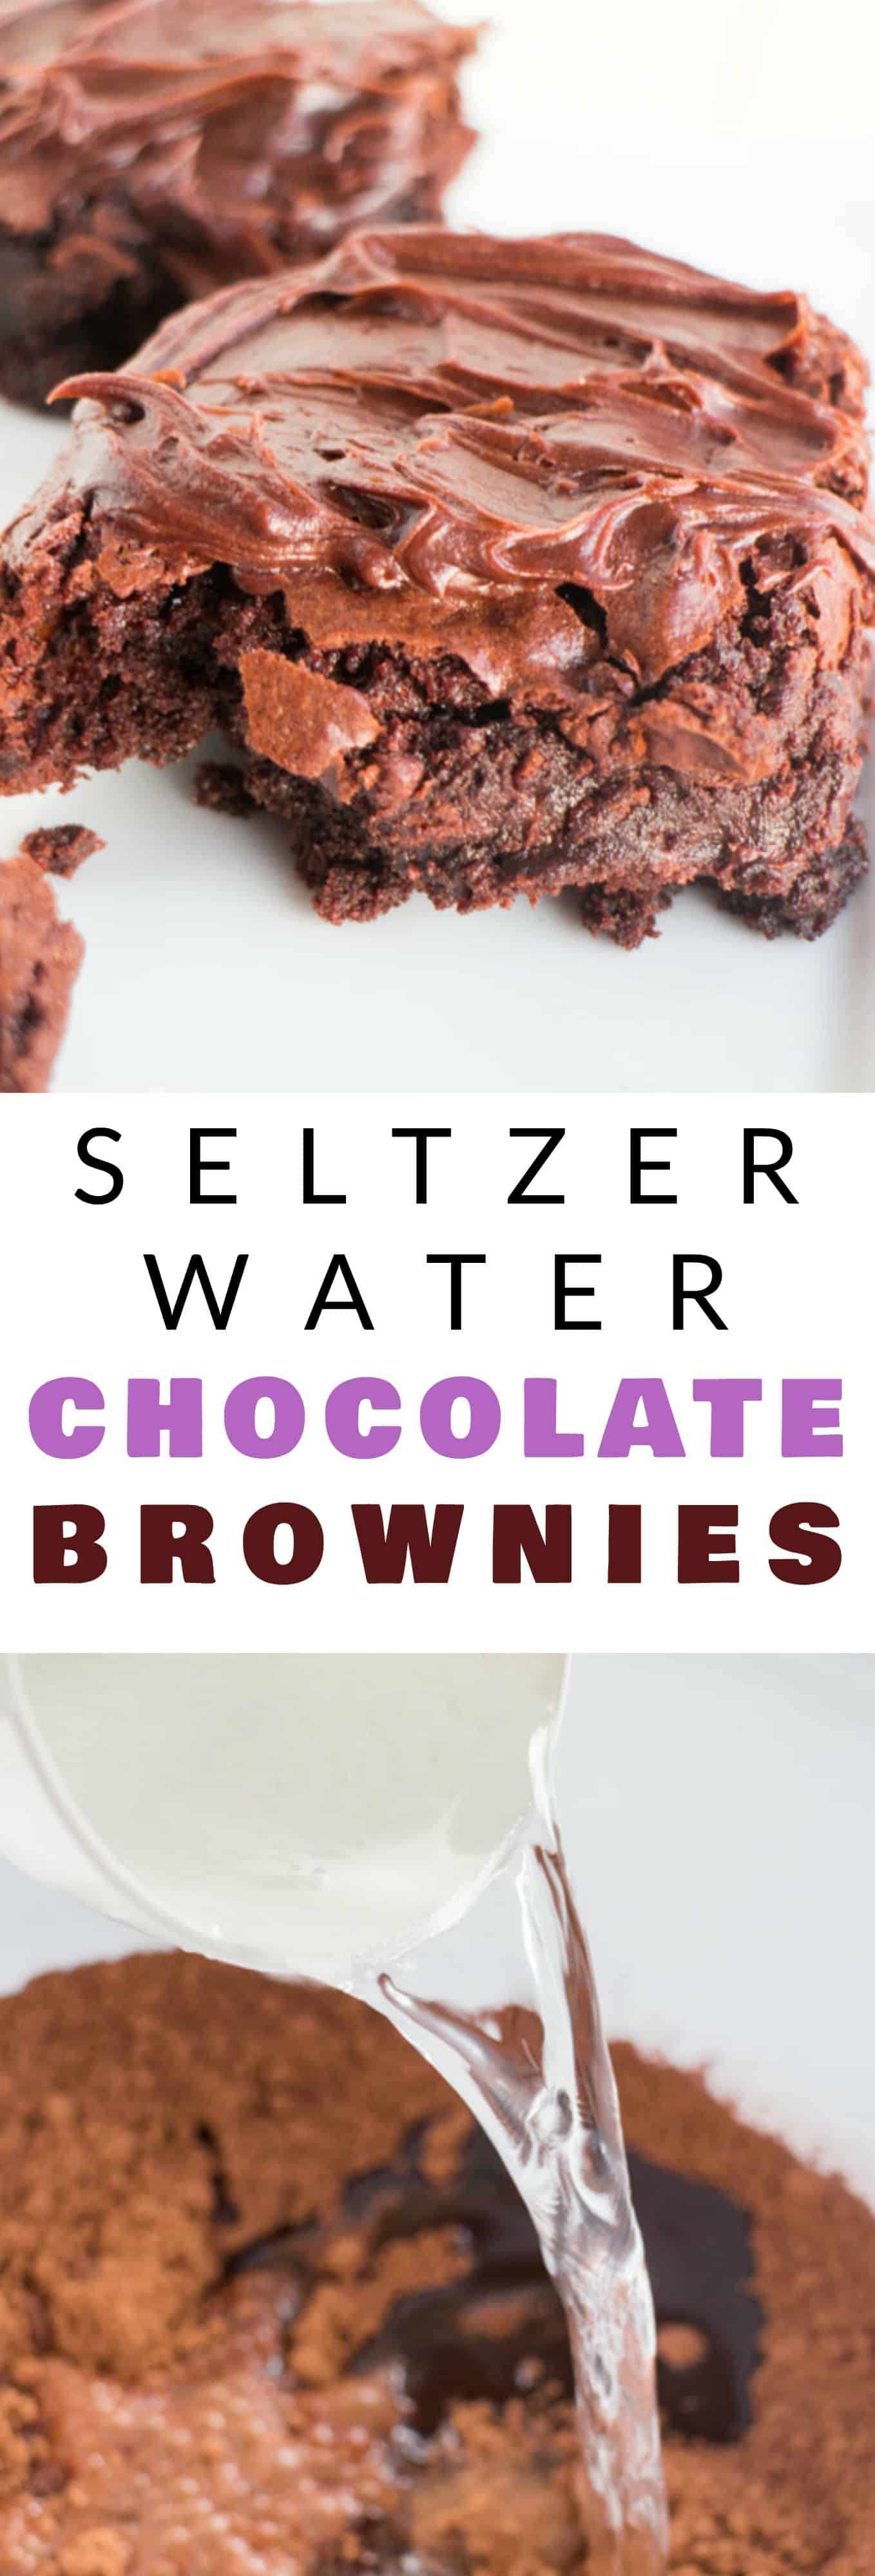 FUDGY Chocolate Brownies made with SELTZER water! Easy Homemade Double Chocolate Brownies recipe that uses seltzer water to make the brownies extra fluffy and moist! These gooey brownies are made from scratch and have a amazing chocolate frosting on top! My husband considers these the BEST brownies ever!